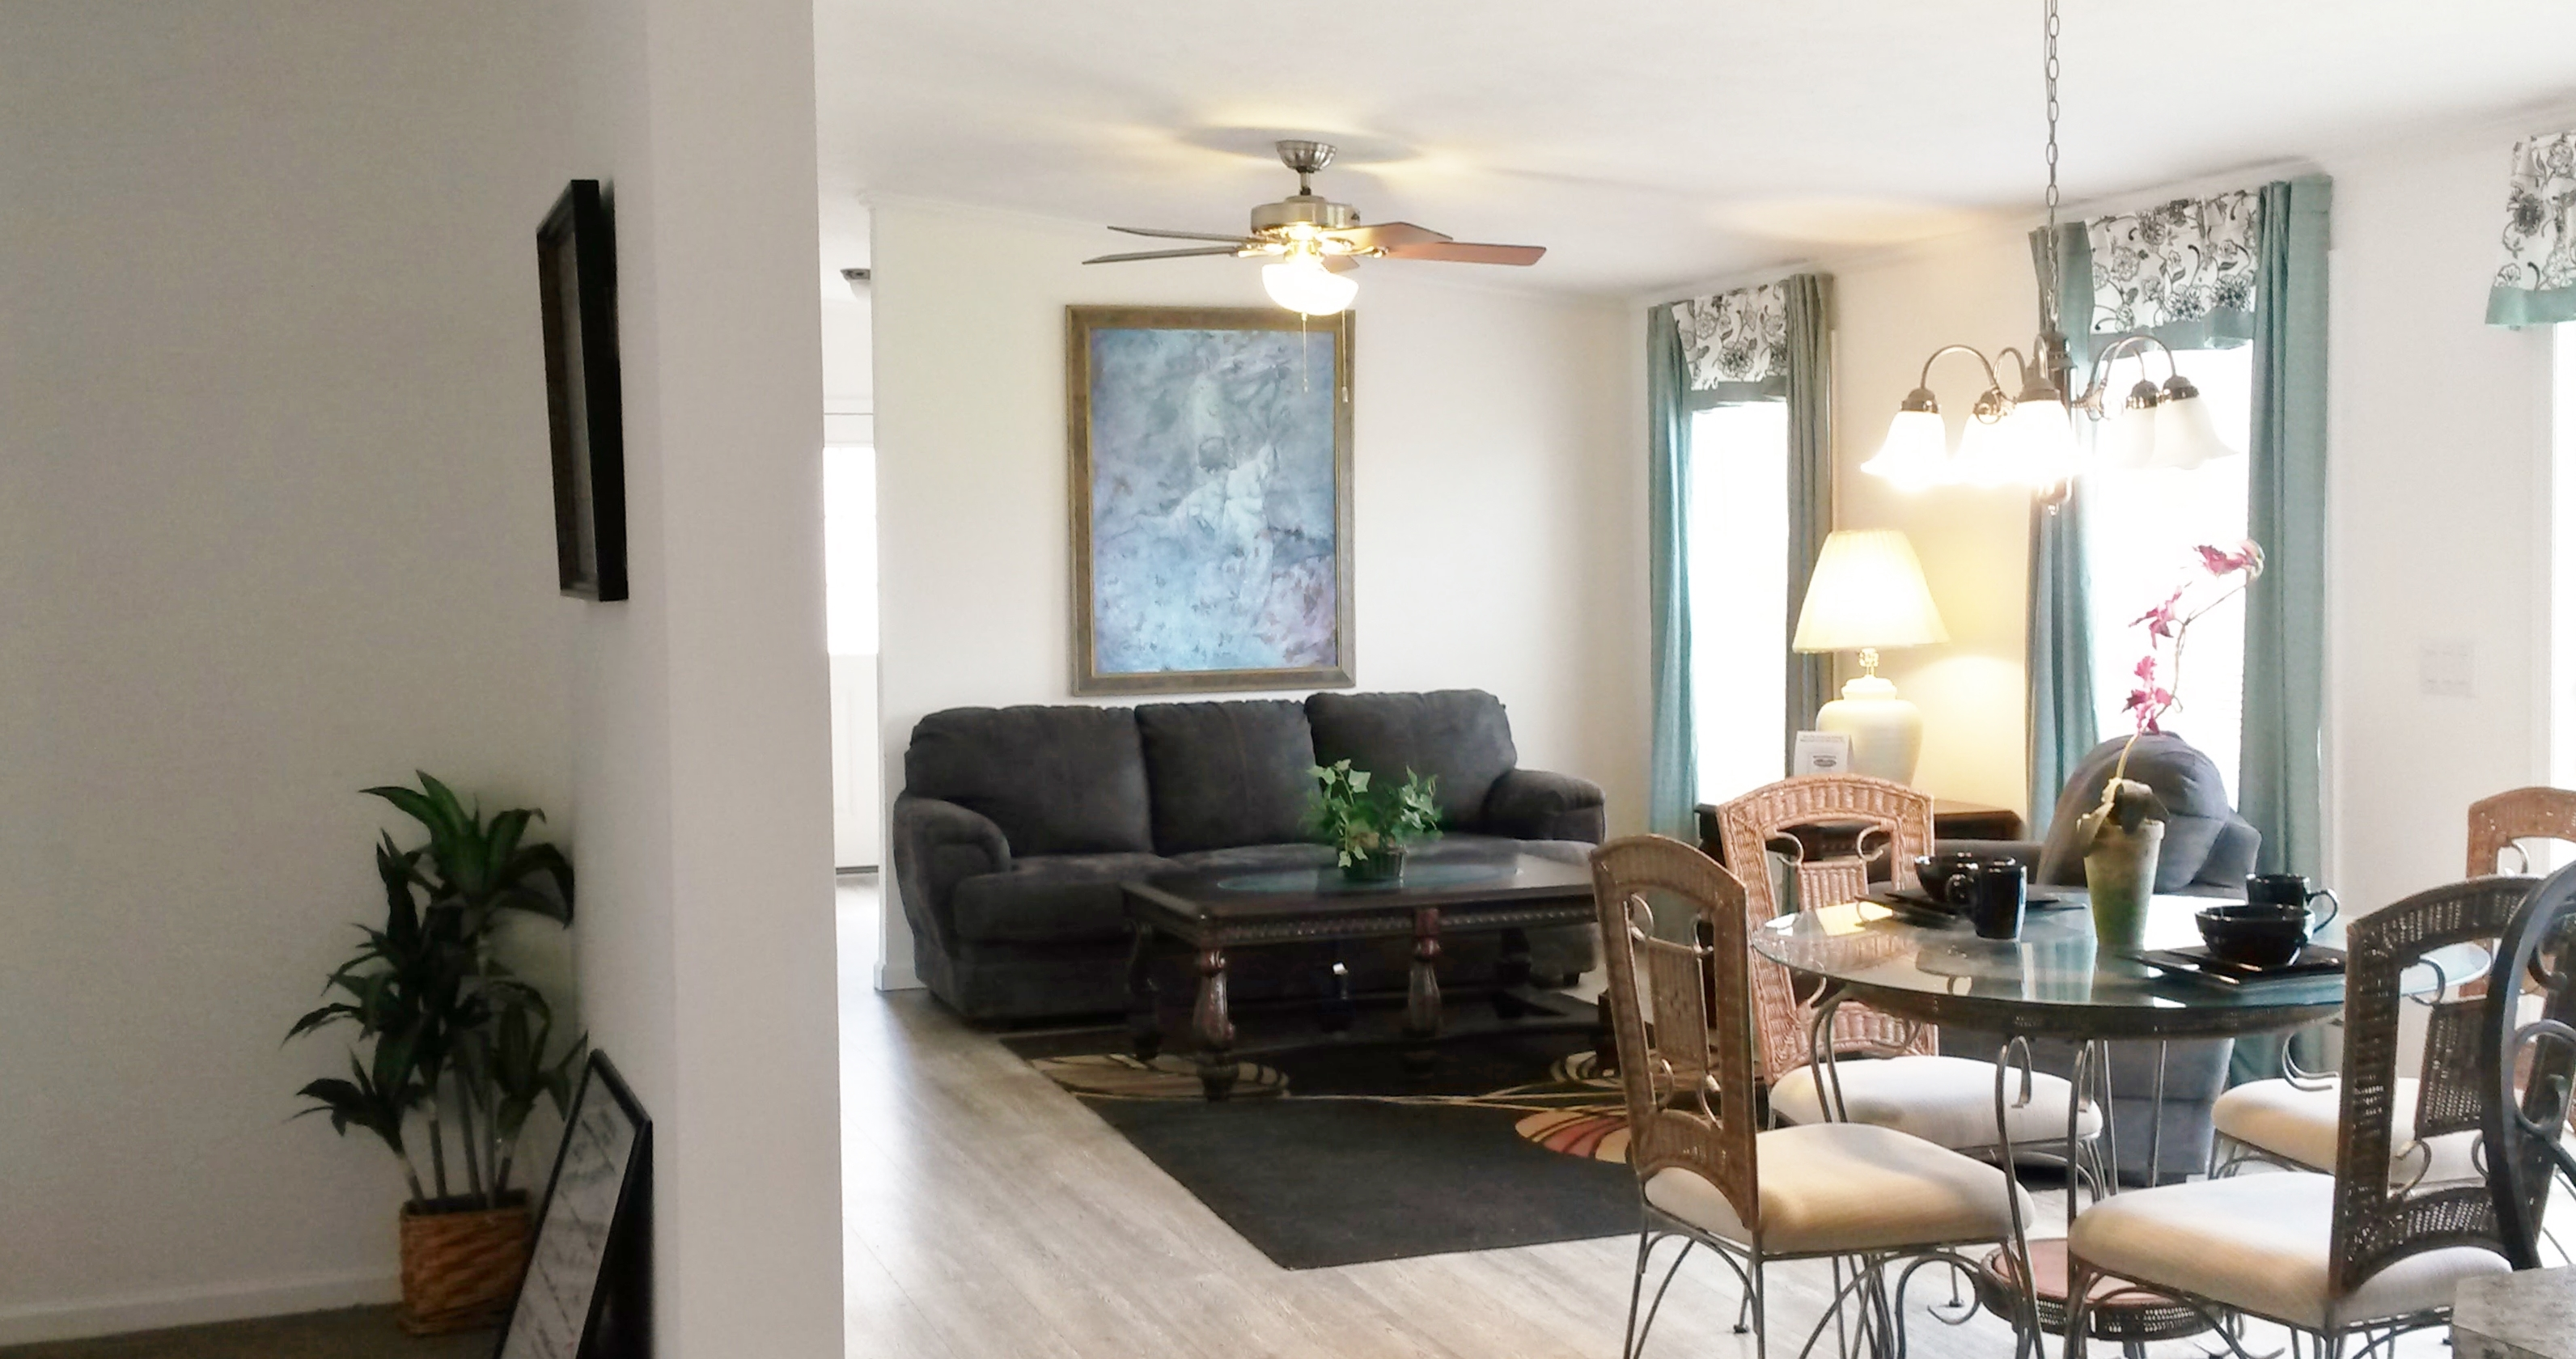 From living room into great room